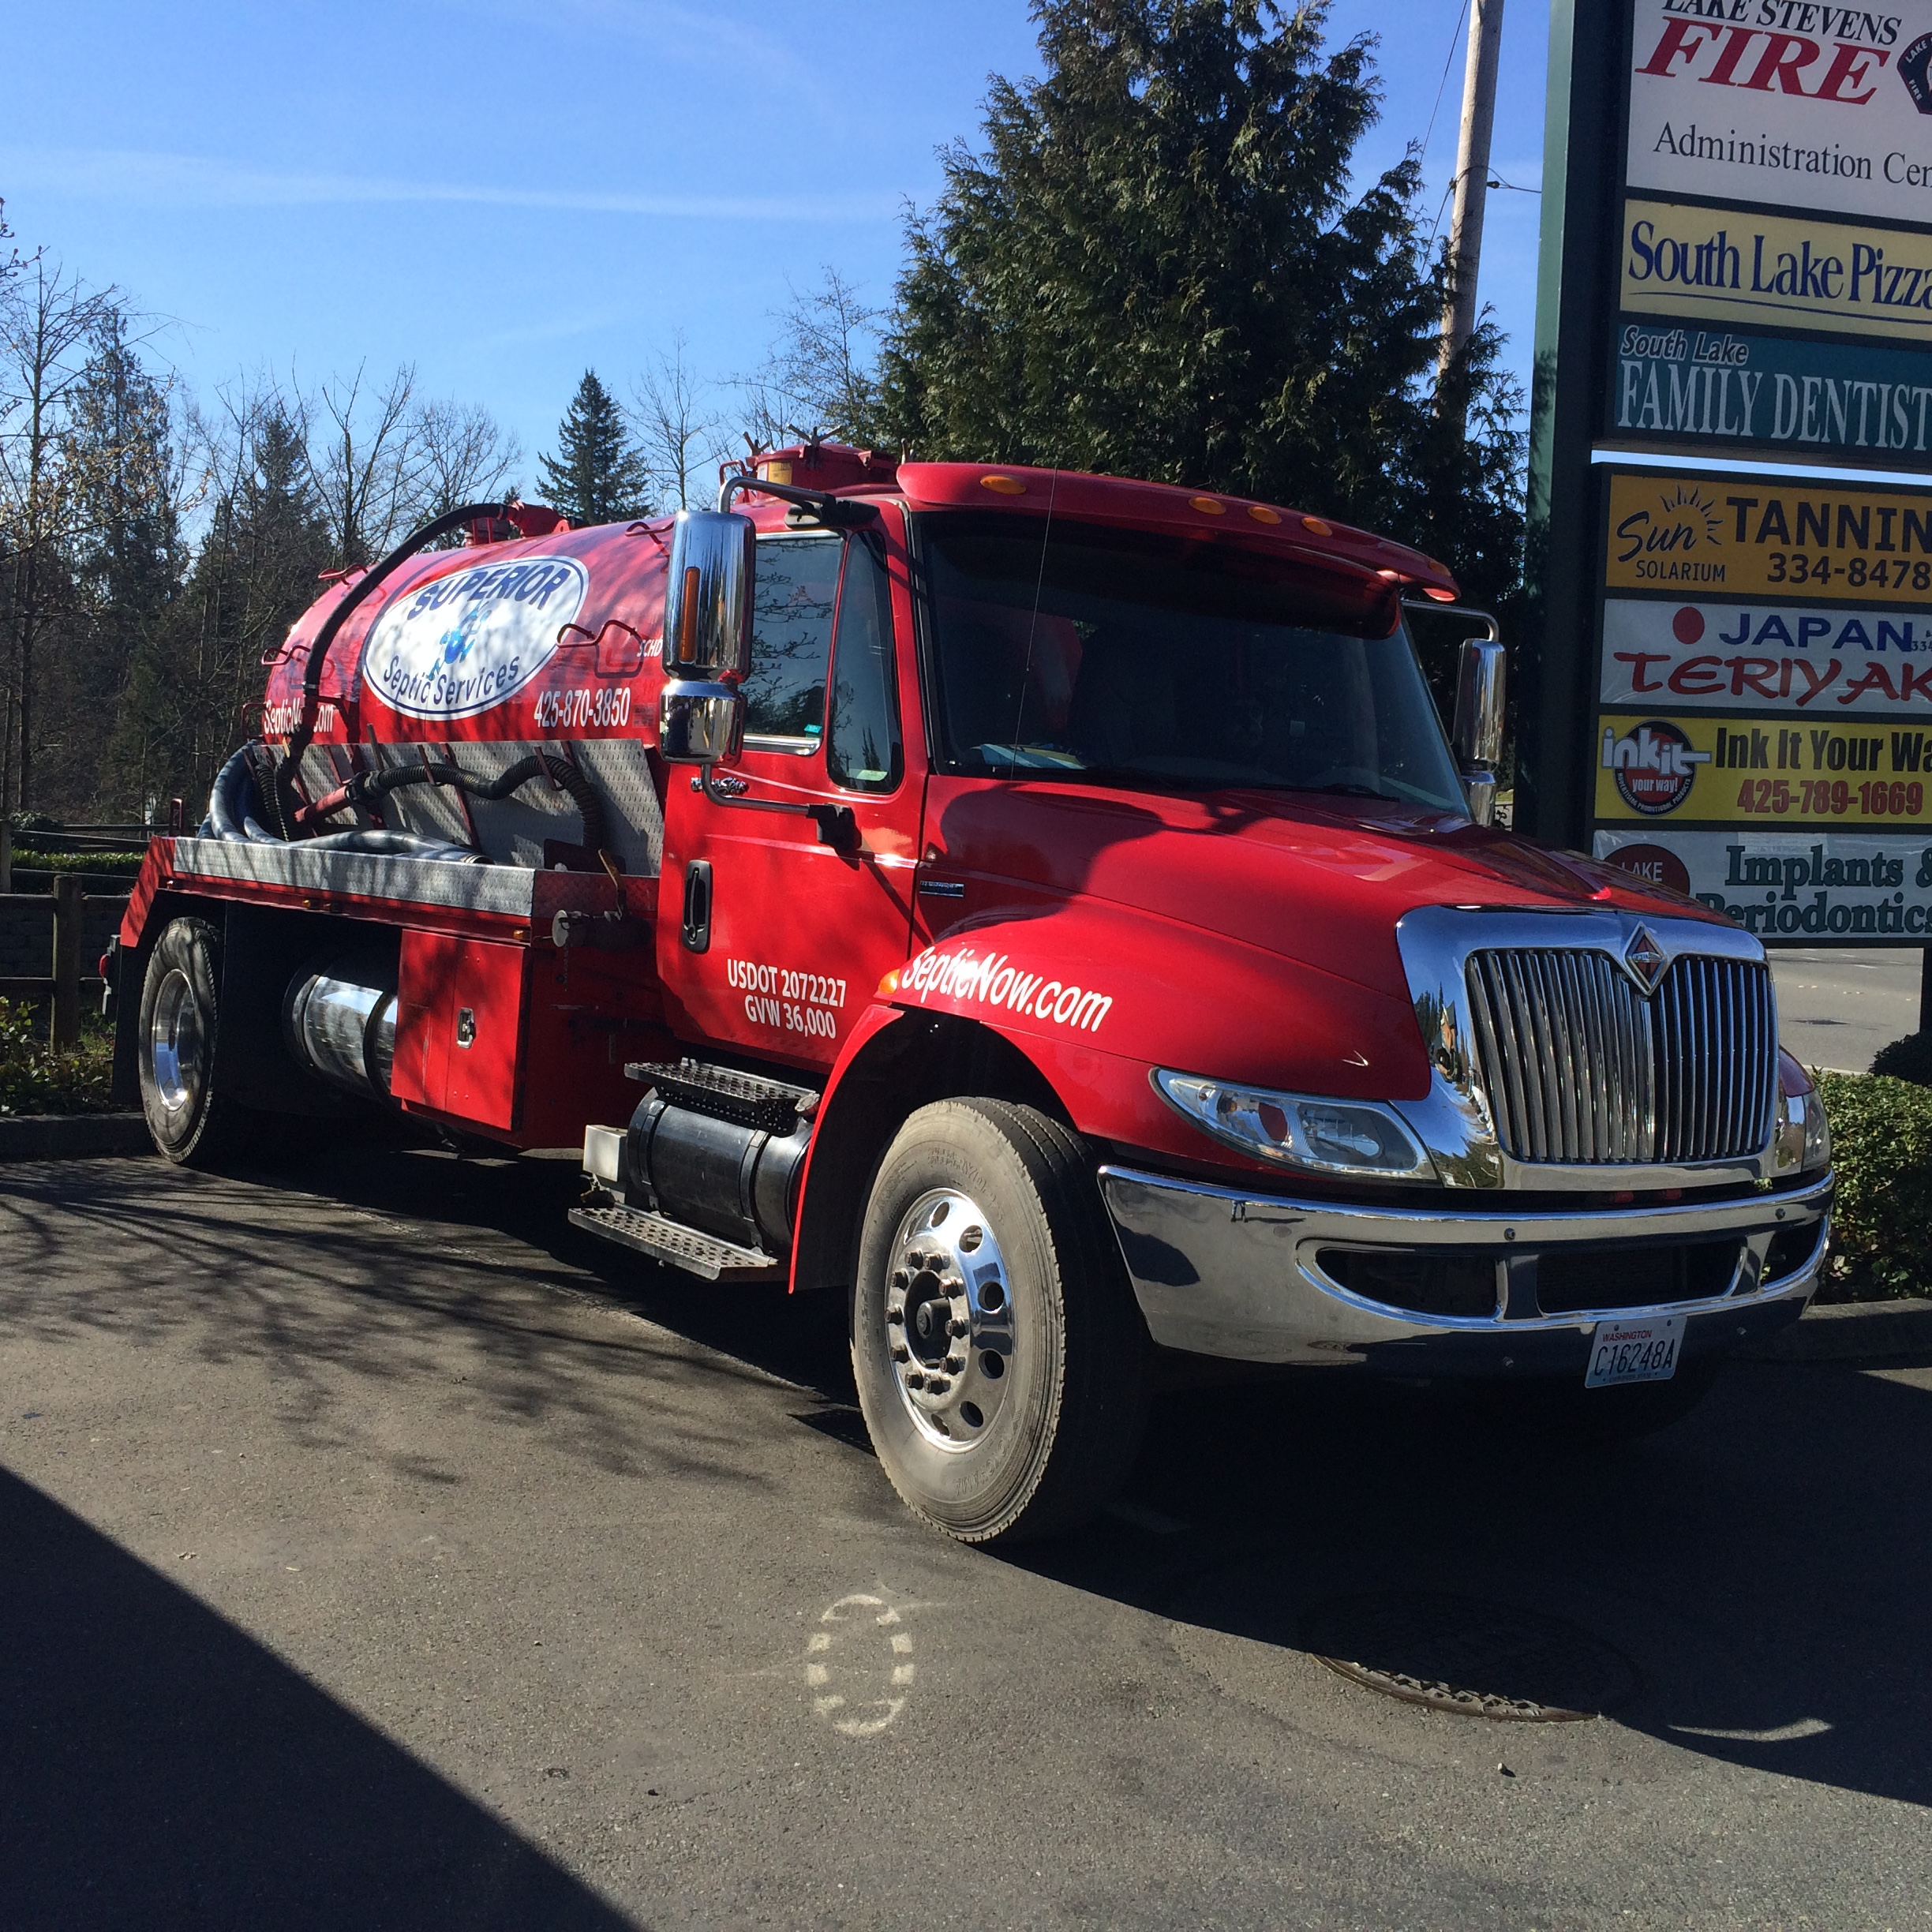 Do I Need A Luxury Portable Bathroom Trailer For My: Septic Repair In Everett, WA